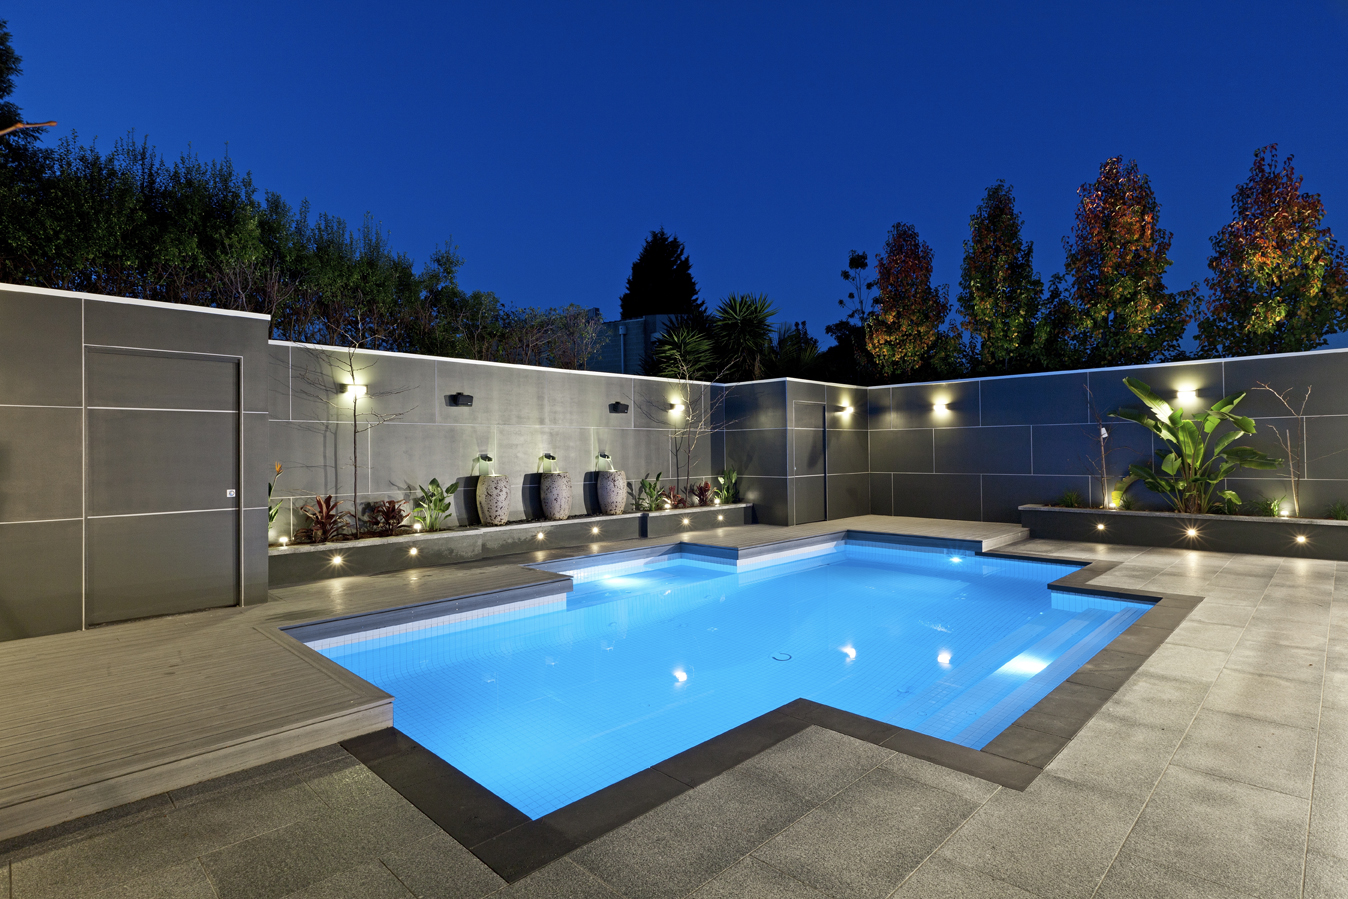 Backyard landscaping ideas swimming pool design for Pool design by poolside